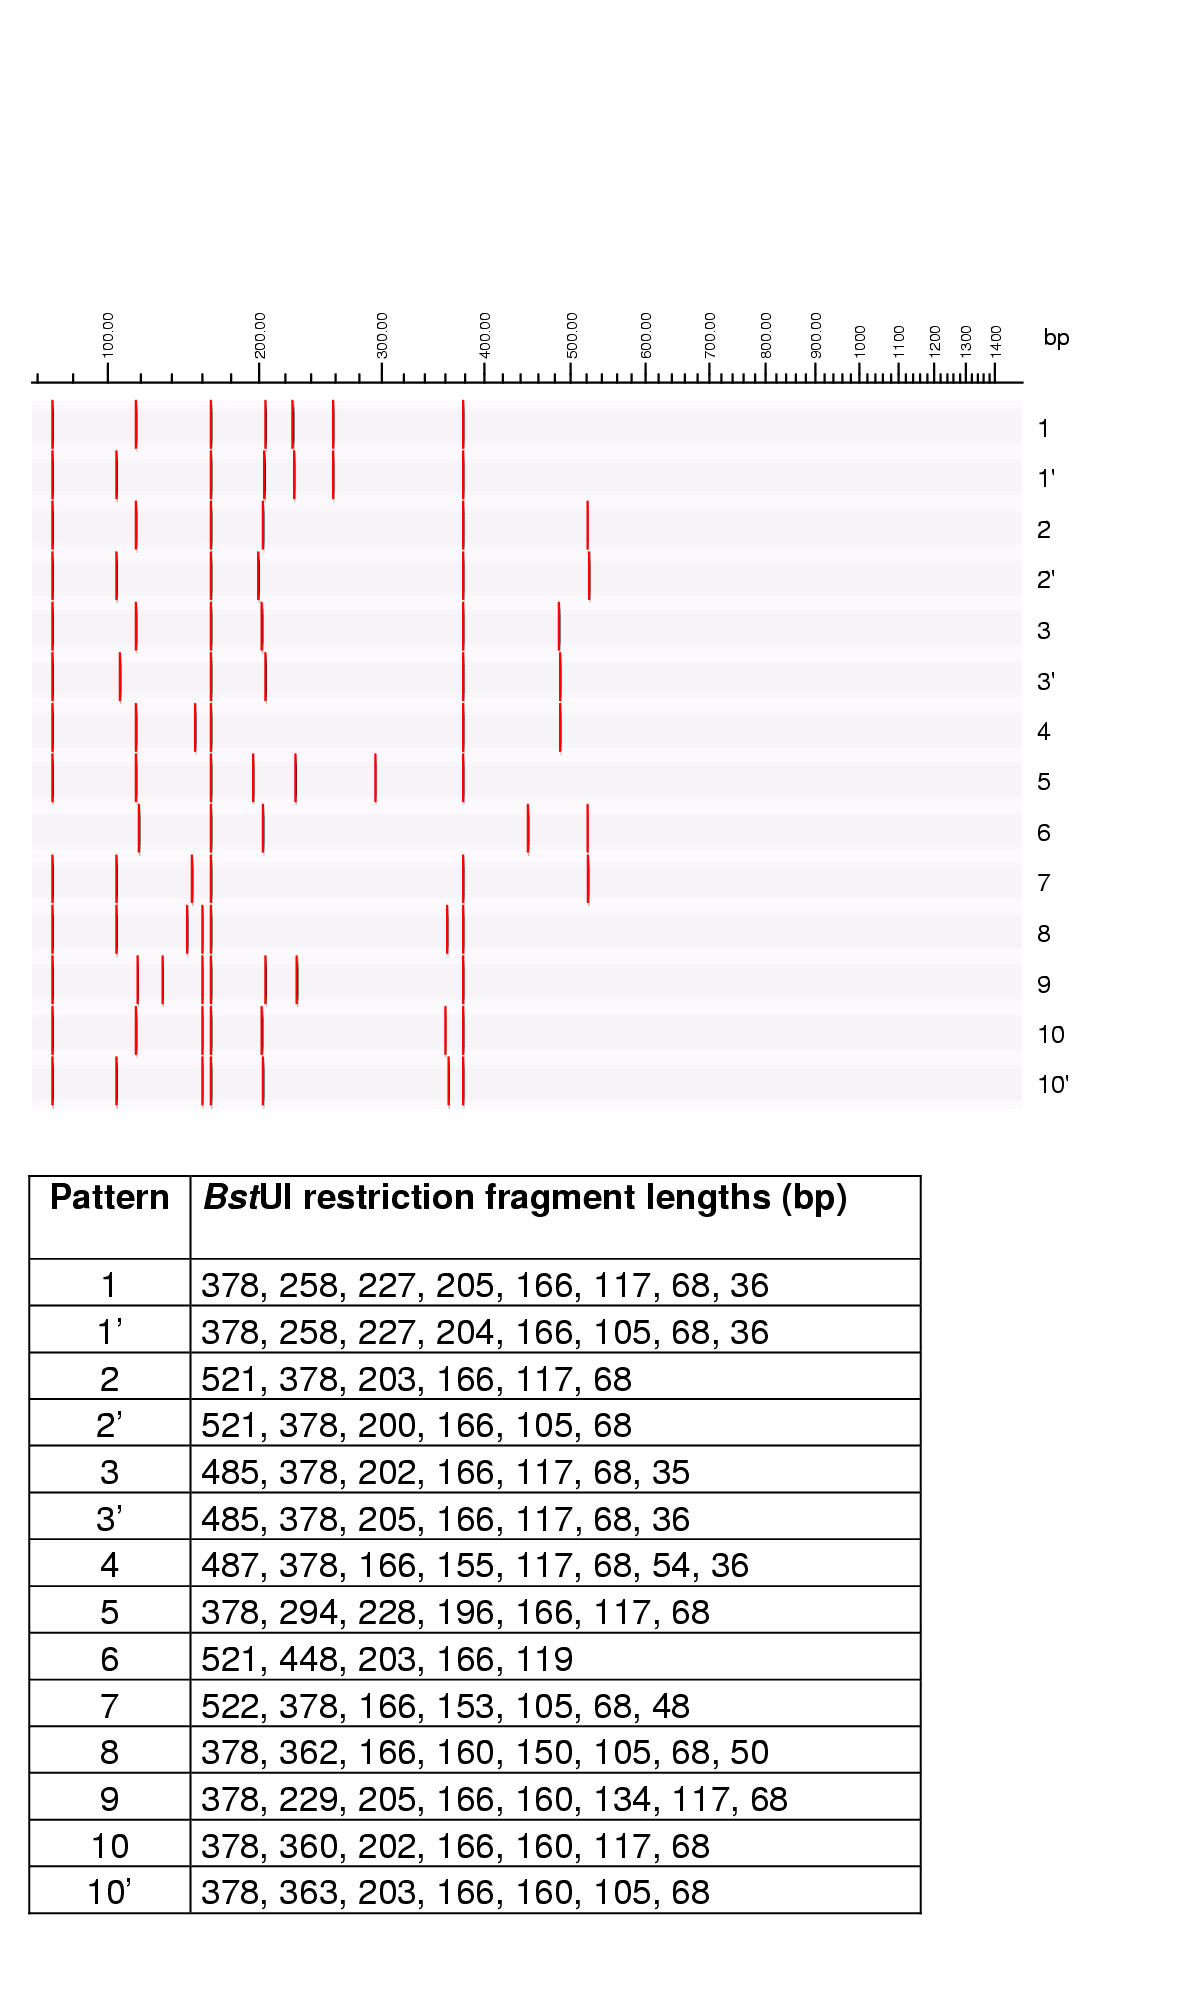 http://static-content.springer.com/image/art%3A10.1186%2F1471-2180-2-4/MediaObjects/12866_2001_Article_38_Fig7_HTML.jpg